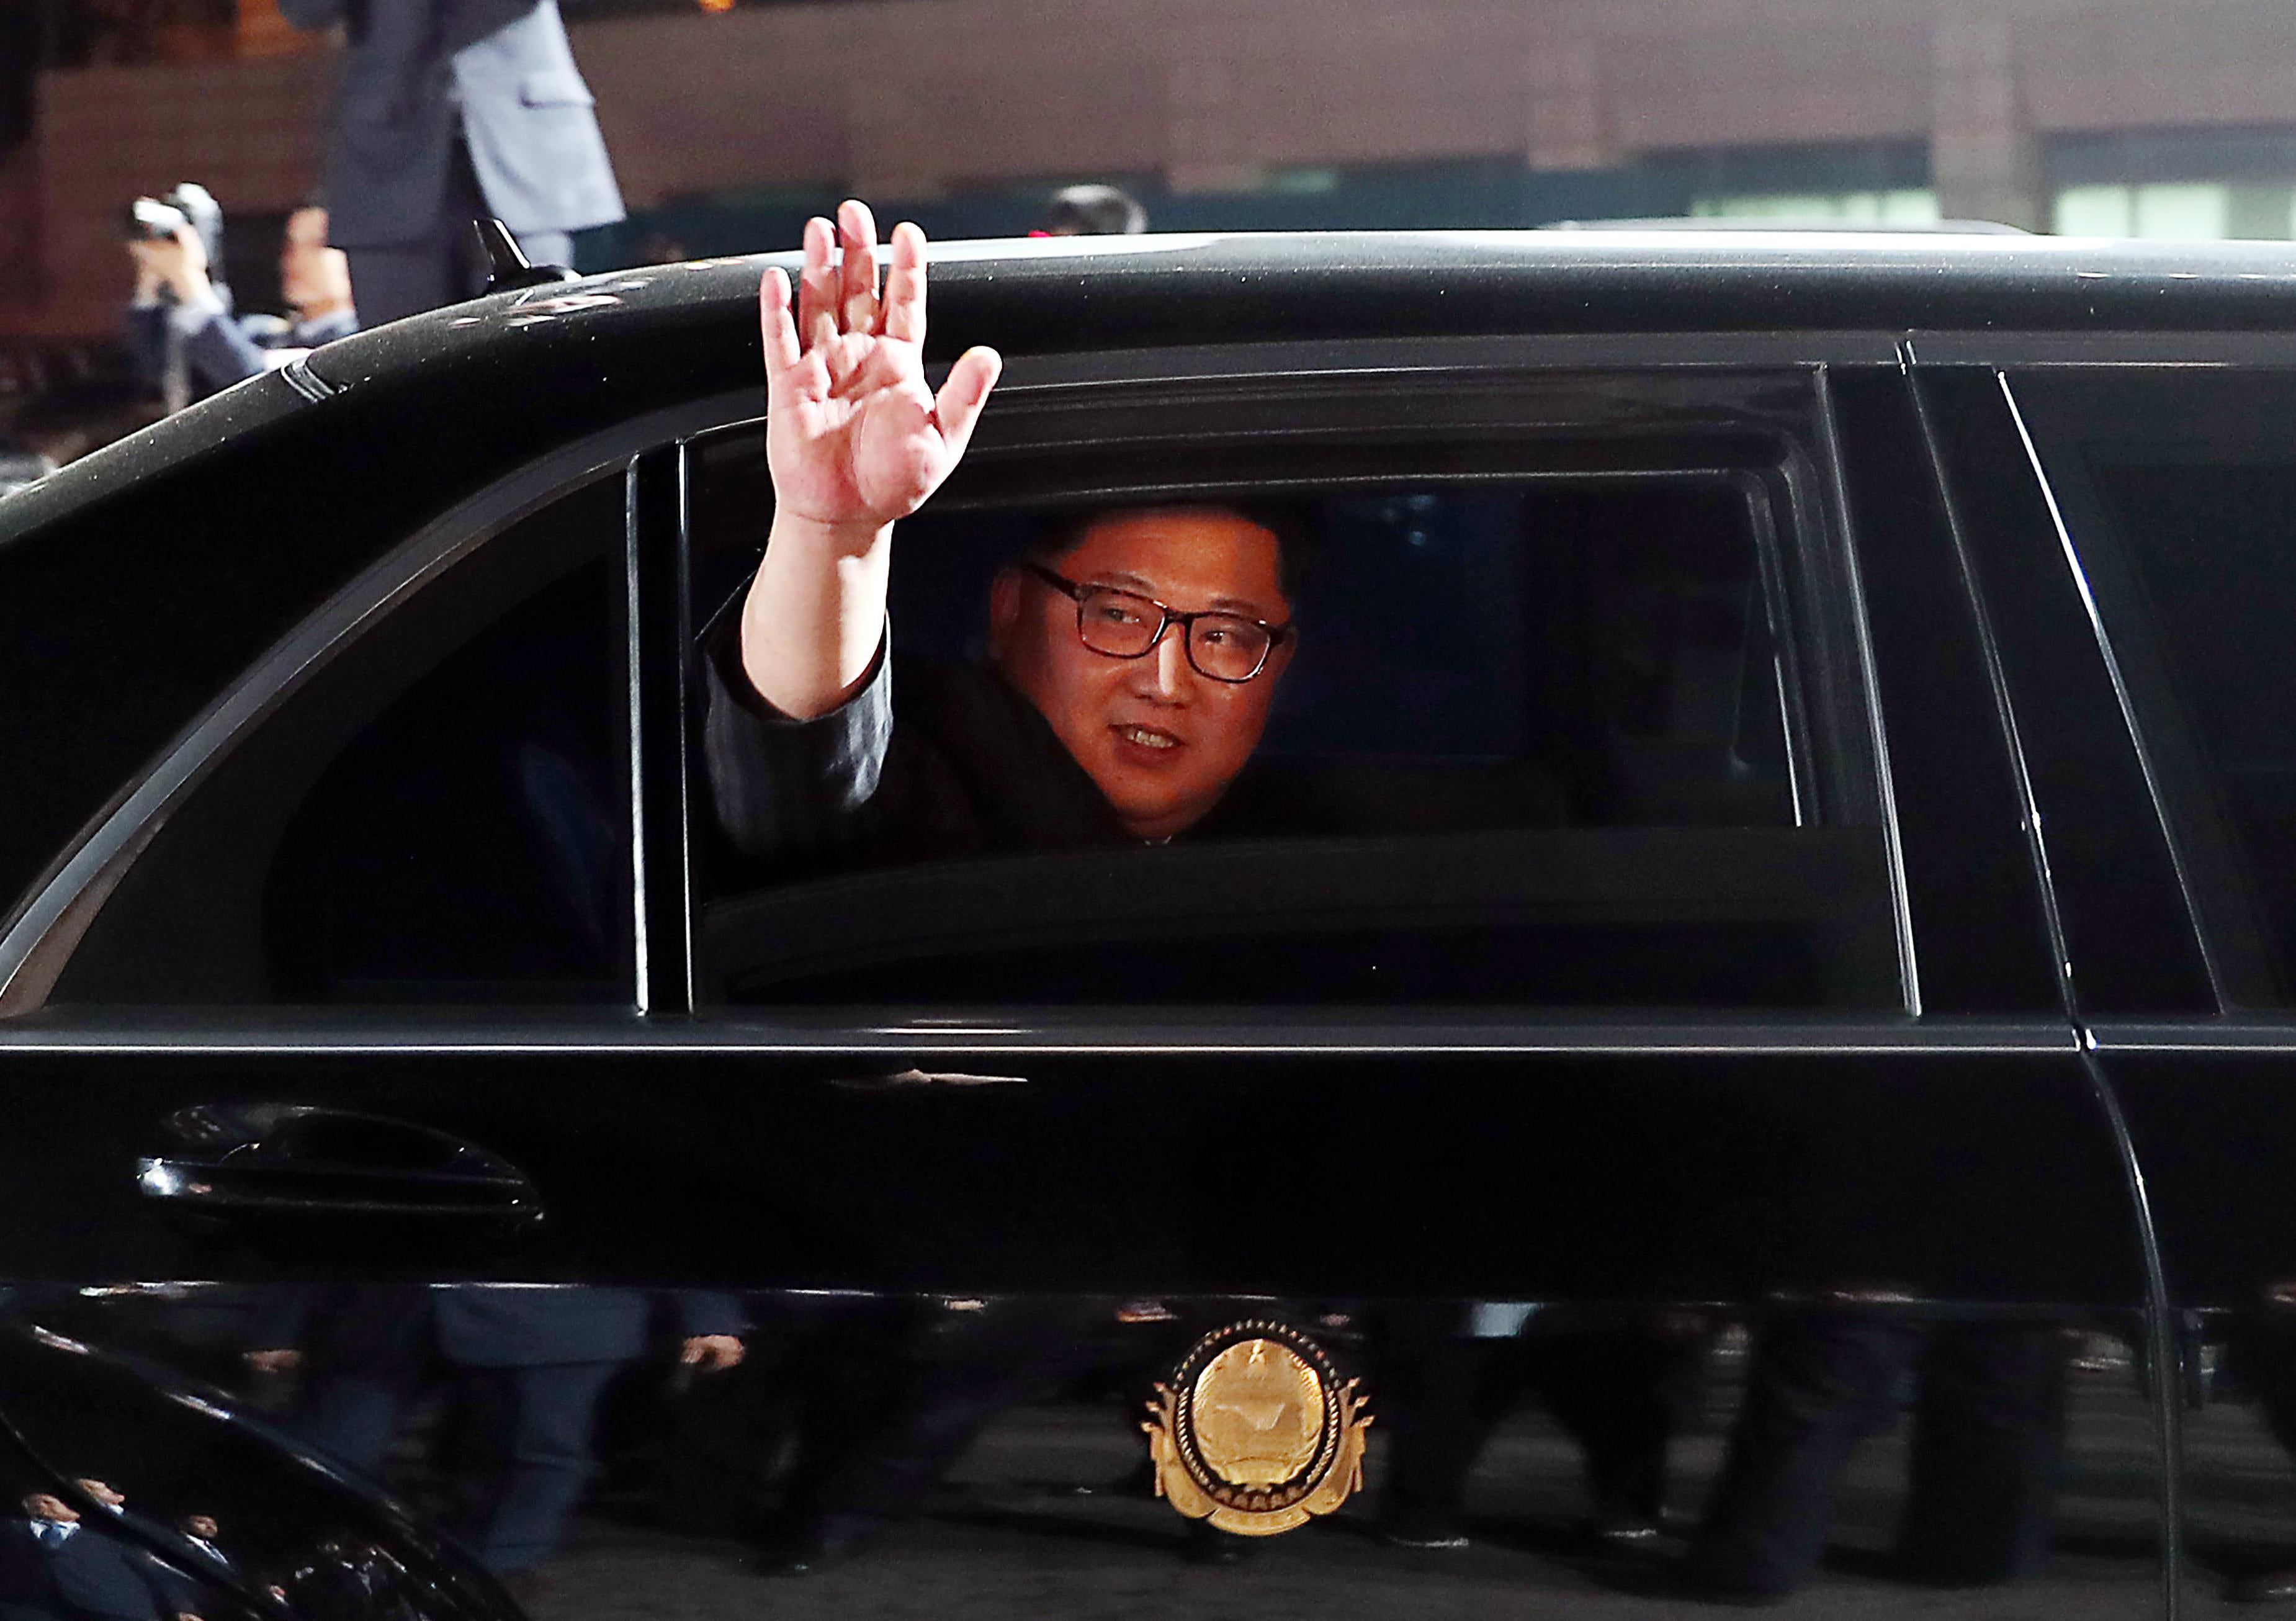 North Korea's leader Kim Jong Un waves in a car as he leaves for the North after a closing ceremony at the end of the historic summit with South Korea's President Moon Jae-in at the truce village of Panmunjom on April 27, 2018.